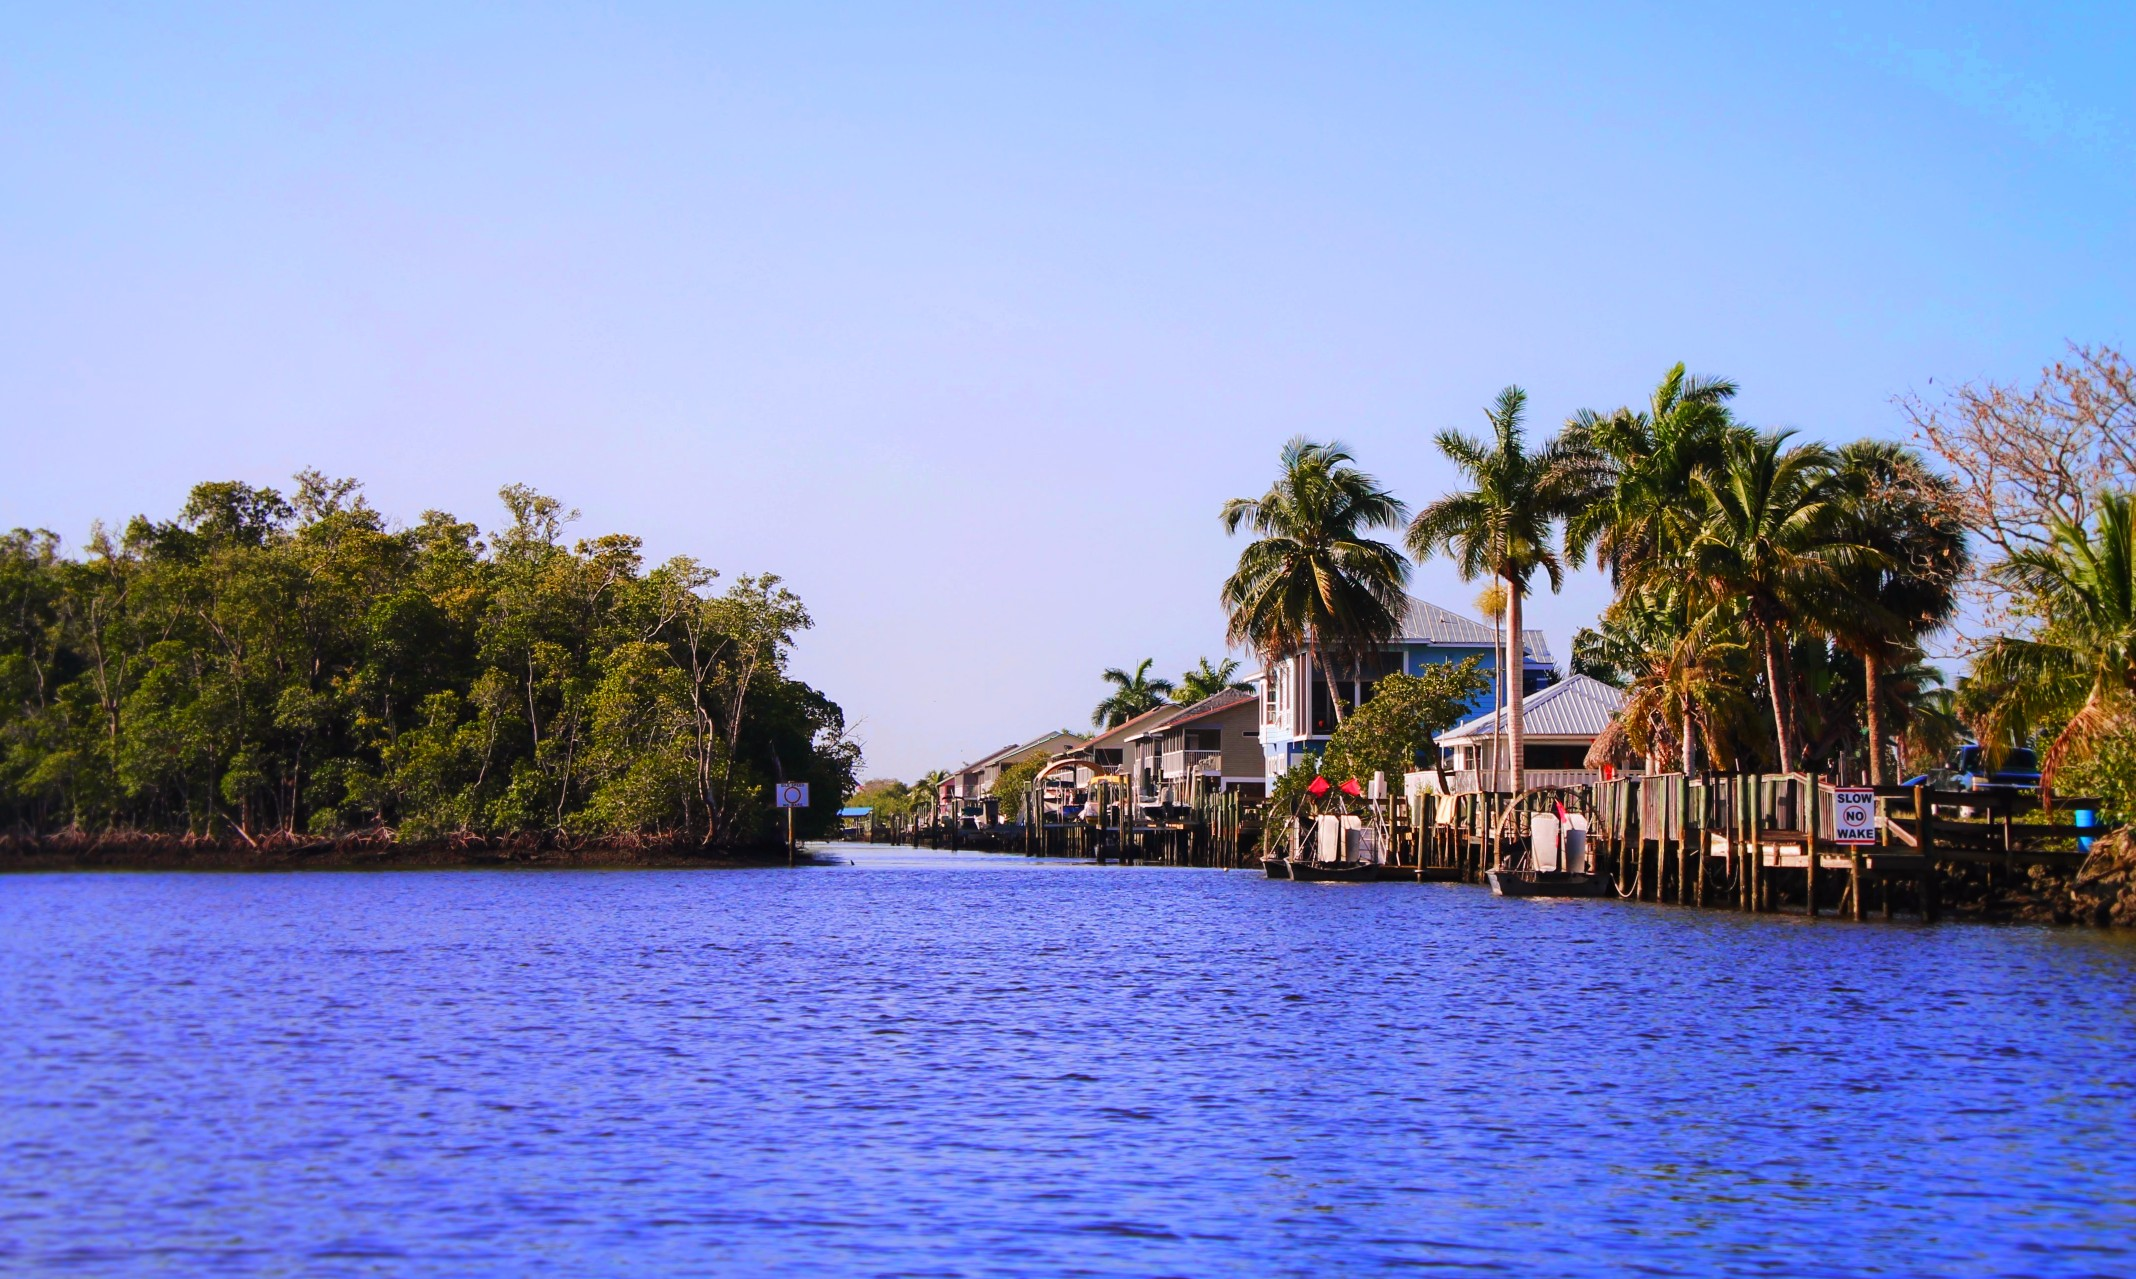 Everglade-City-from-Airboat-Ride-1.jpg